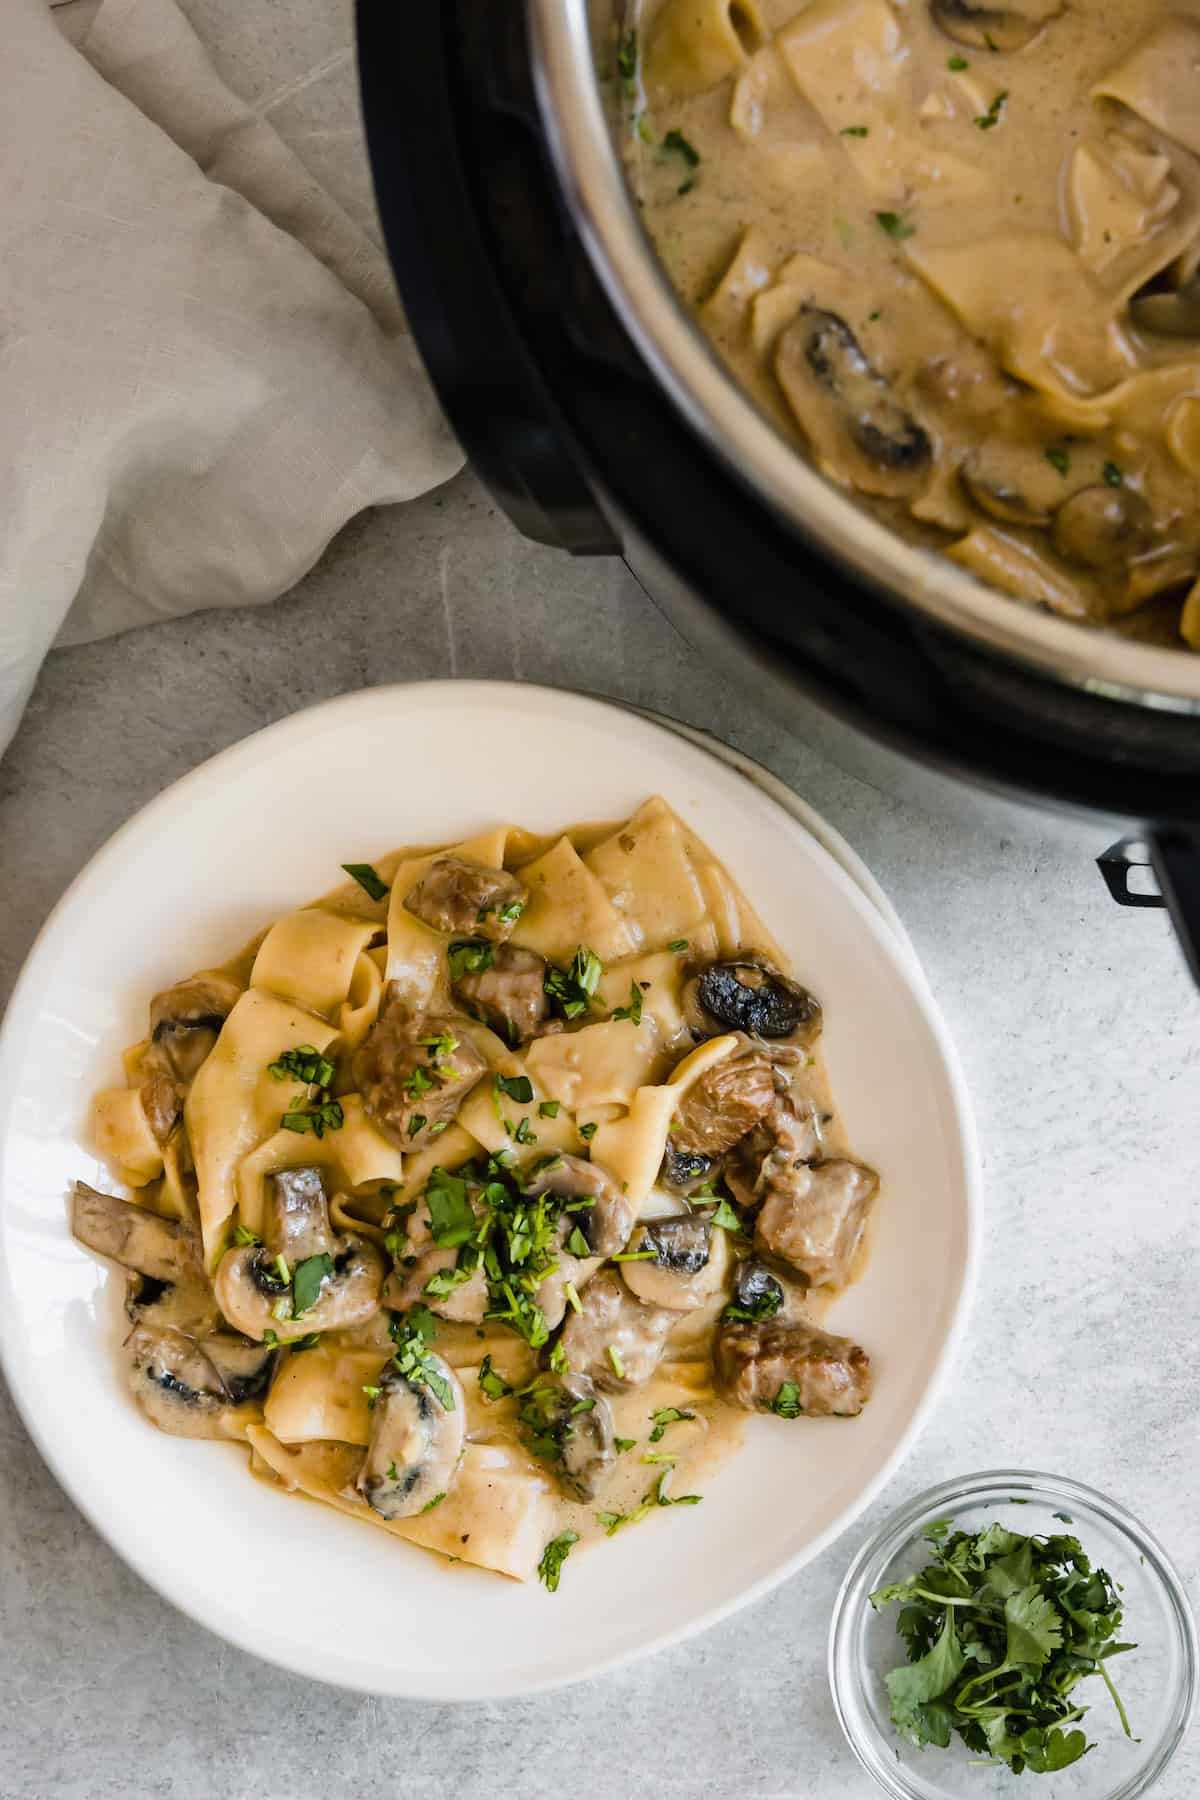 A Plate of Beef Stroganoff Beside a Pressure Cooker Filled with the Rest